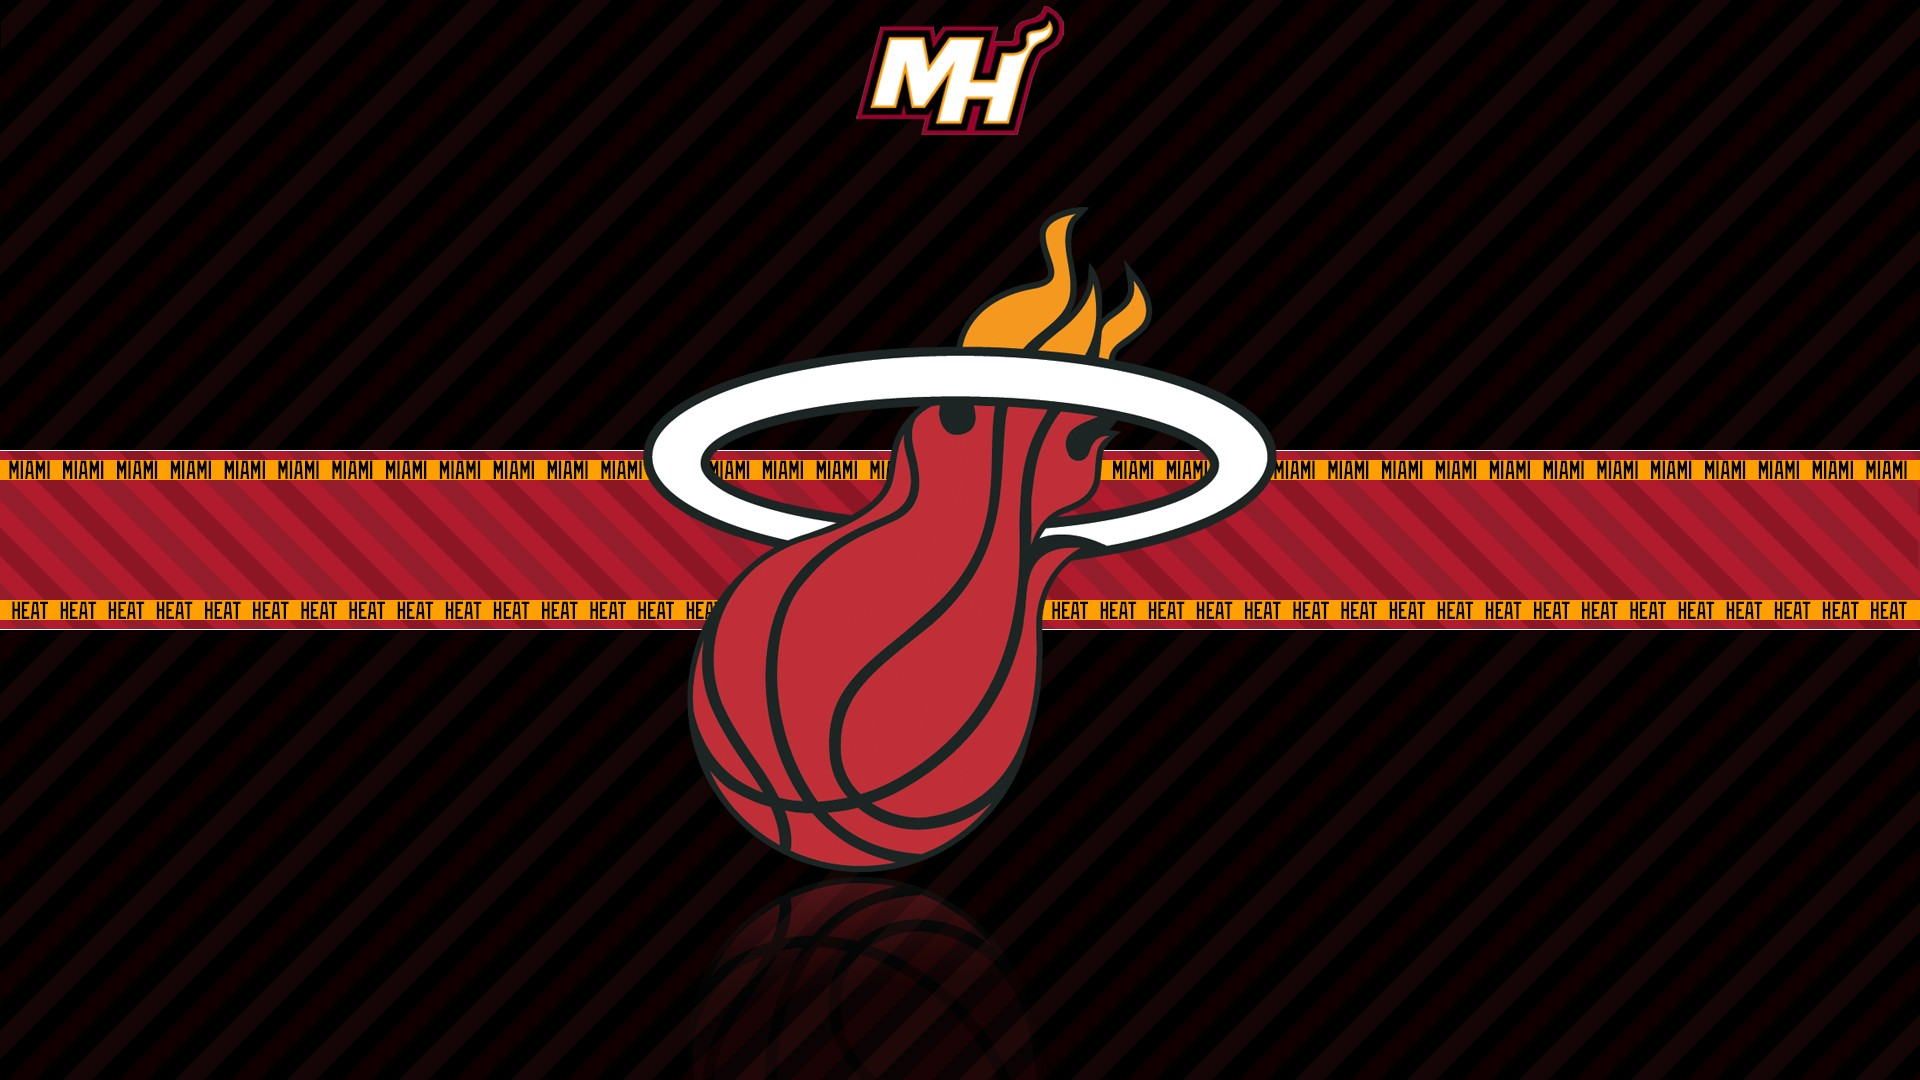 Miami Heat HD Wallpaper | Background Image | 1920x1080 | ID:410460 - Wallpaper Abyss